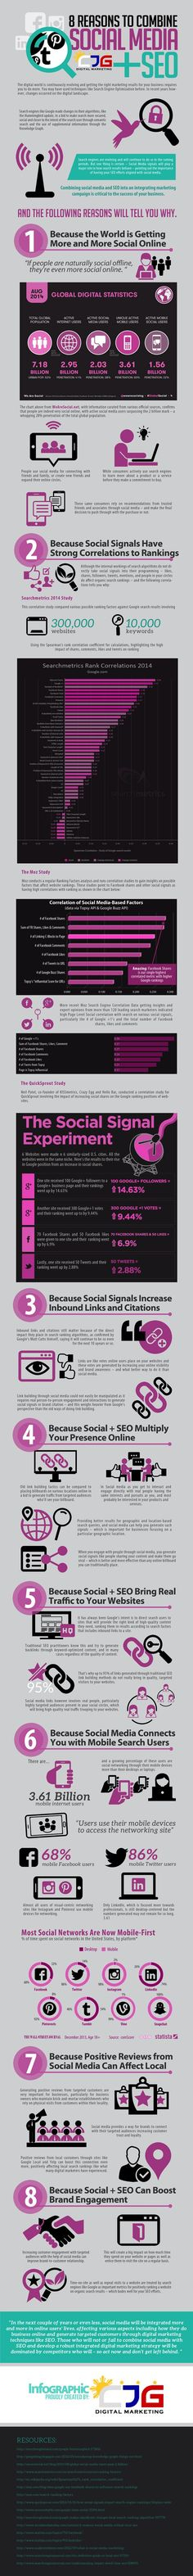 8 Reasons to Combine Social Media and SEO [INFOGRAPHIC] - AllTwitter.